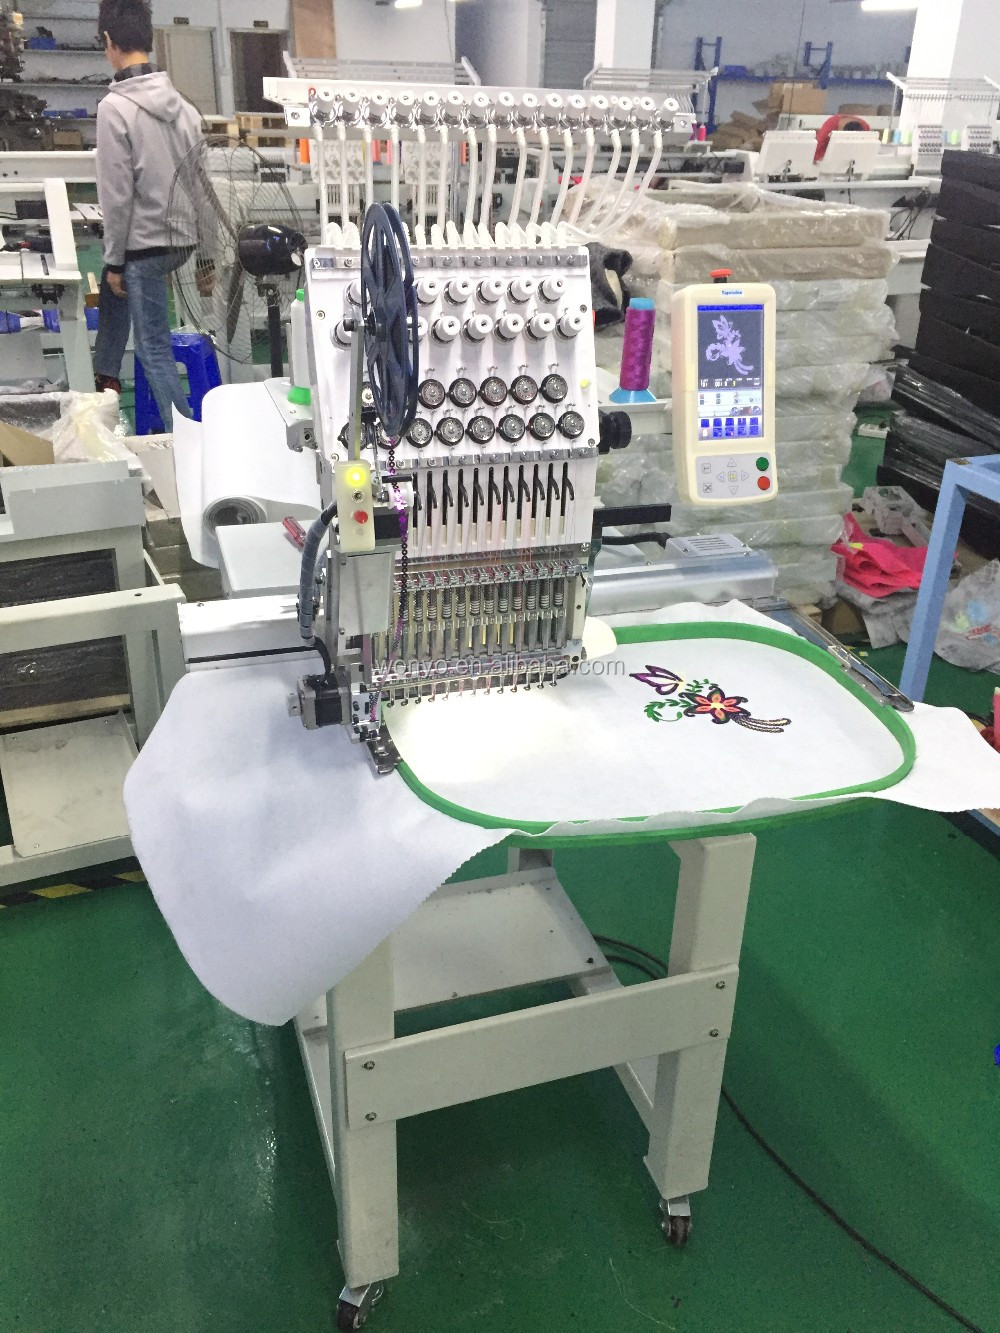 hat and shirt embroidery machine